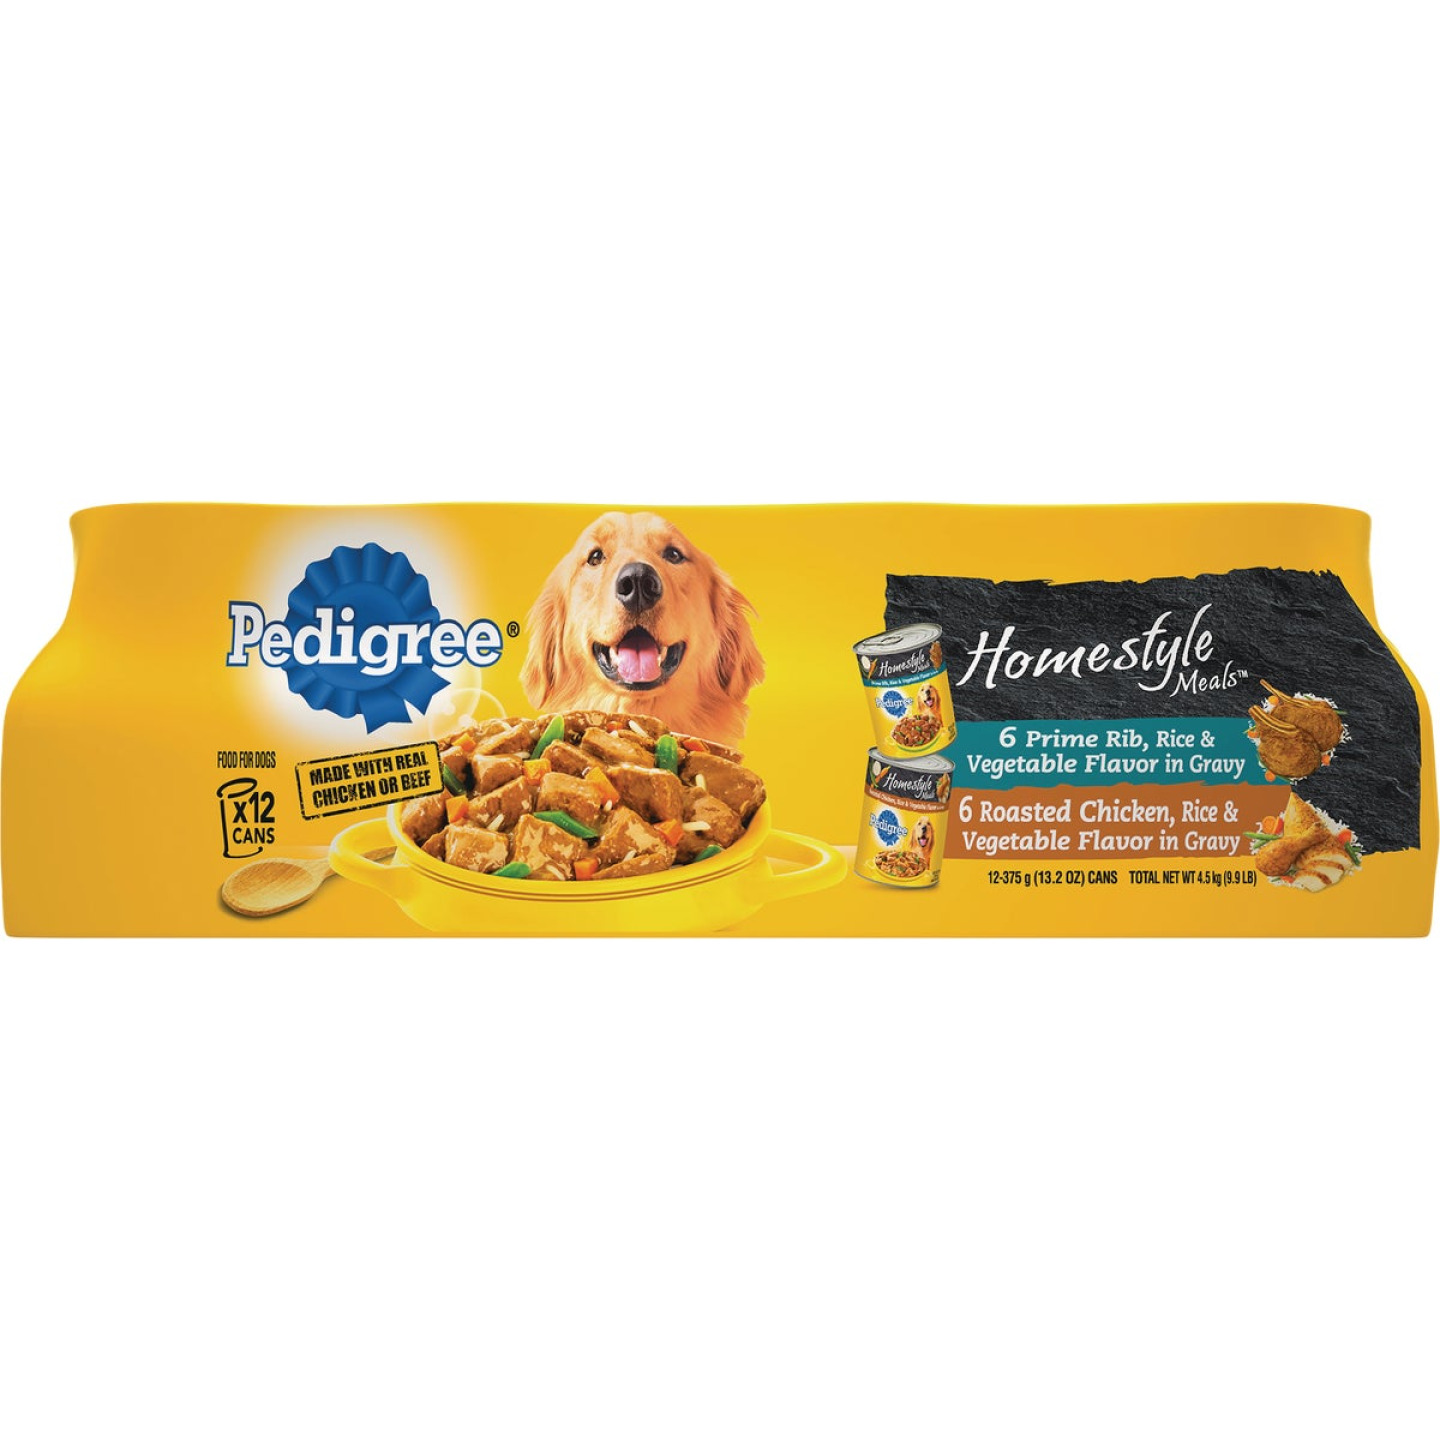 Pedigree Homestyle Meals Prime Rib, Rice, & Vegetable/Roasted Chicken, Rice & Vegetable Variety Wet Dog Food (12-Pack) Image 1